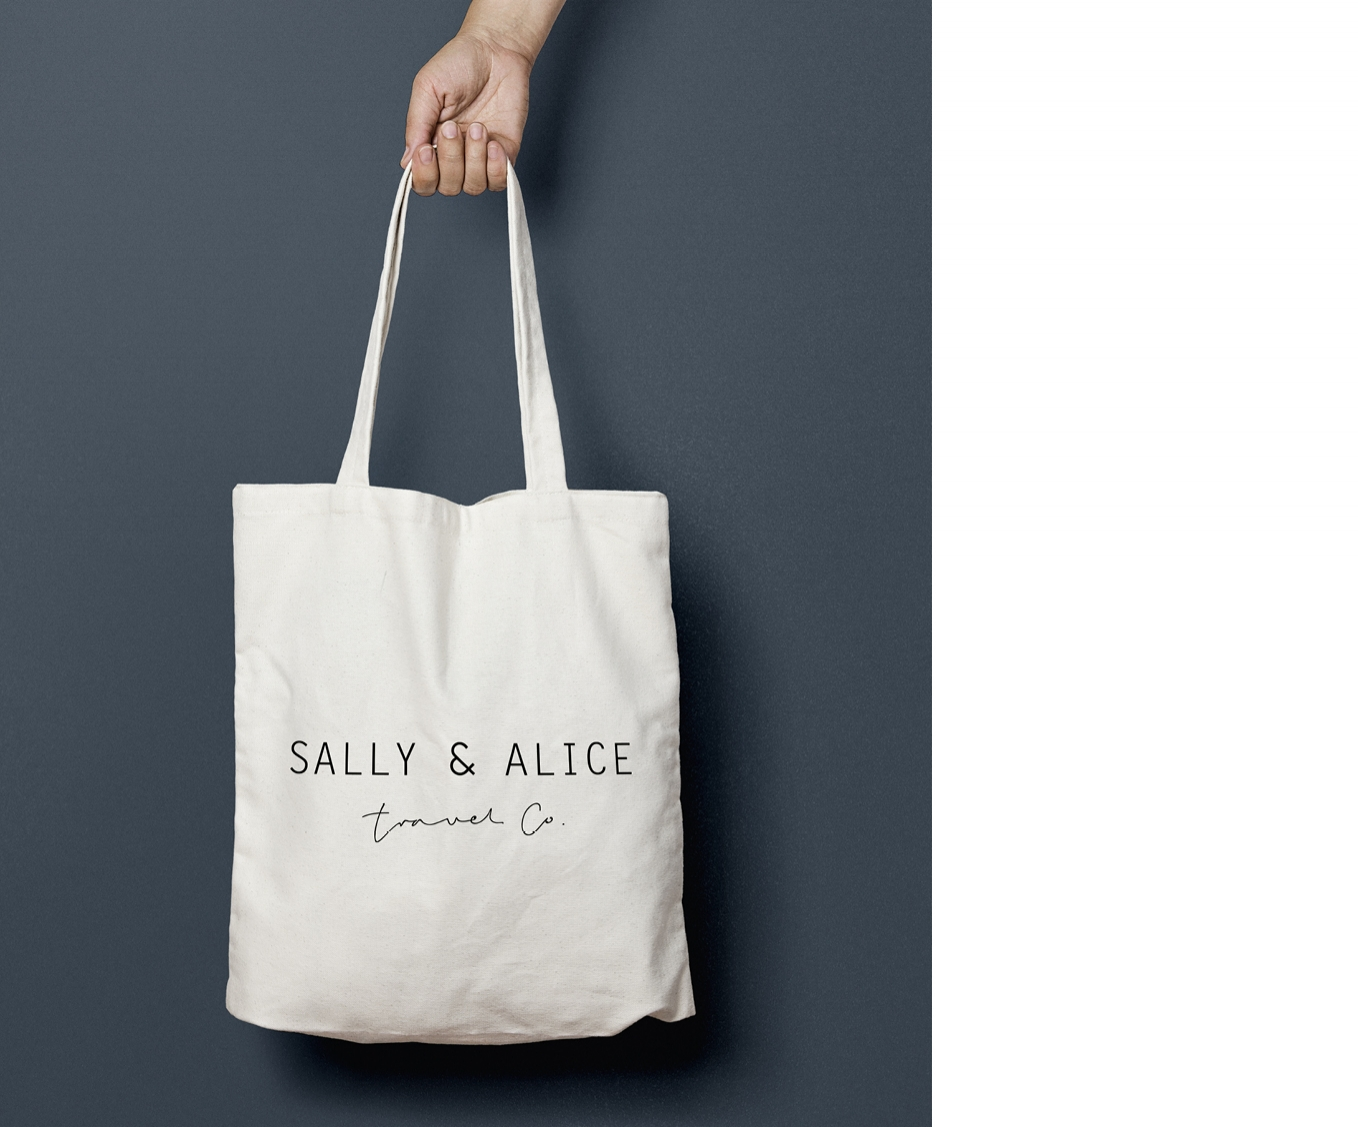 Hoult-and-delis-graphic-design-london